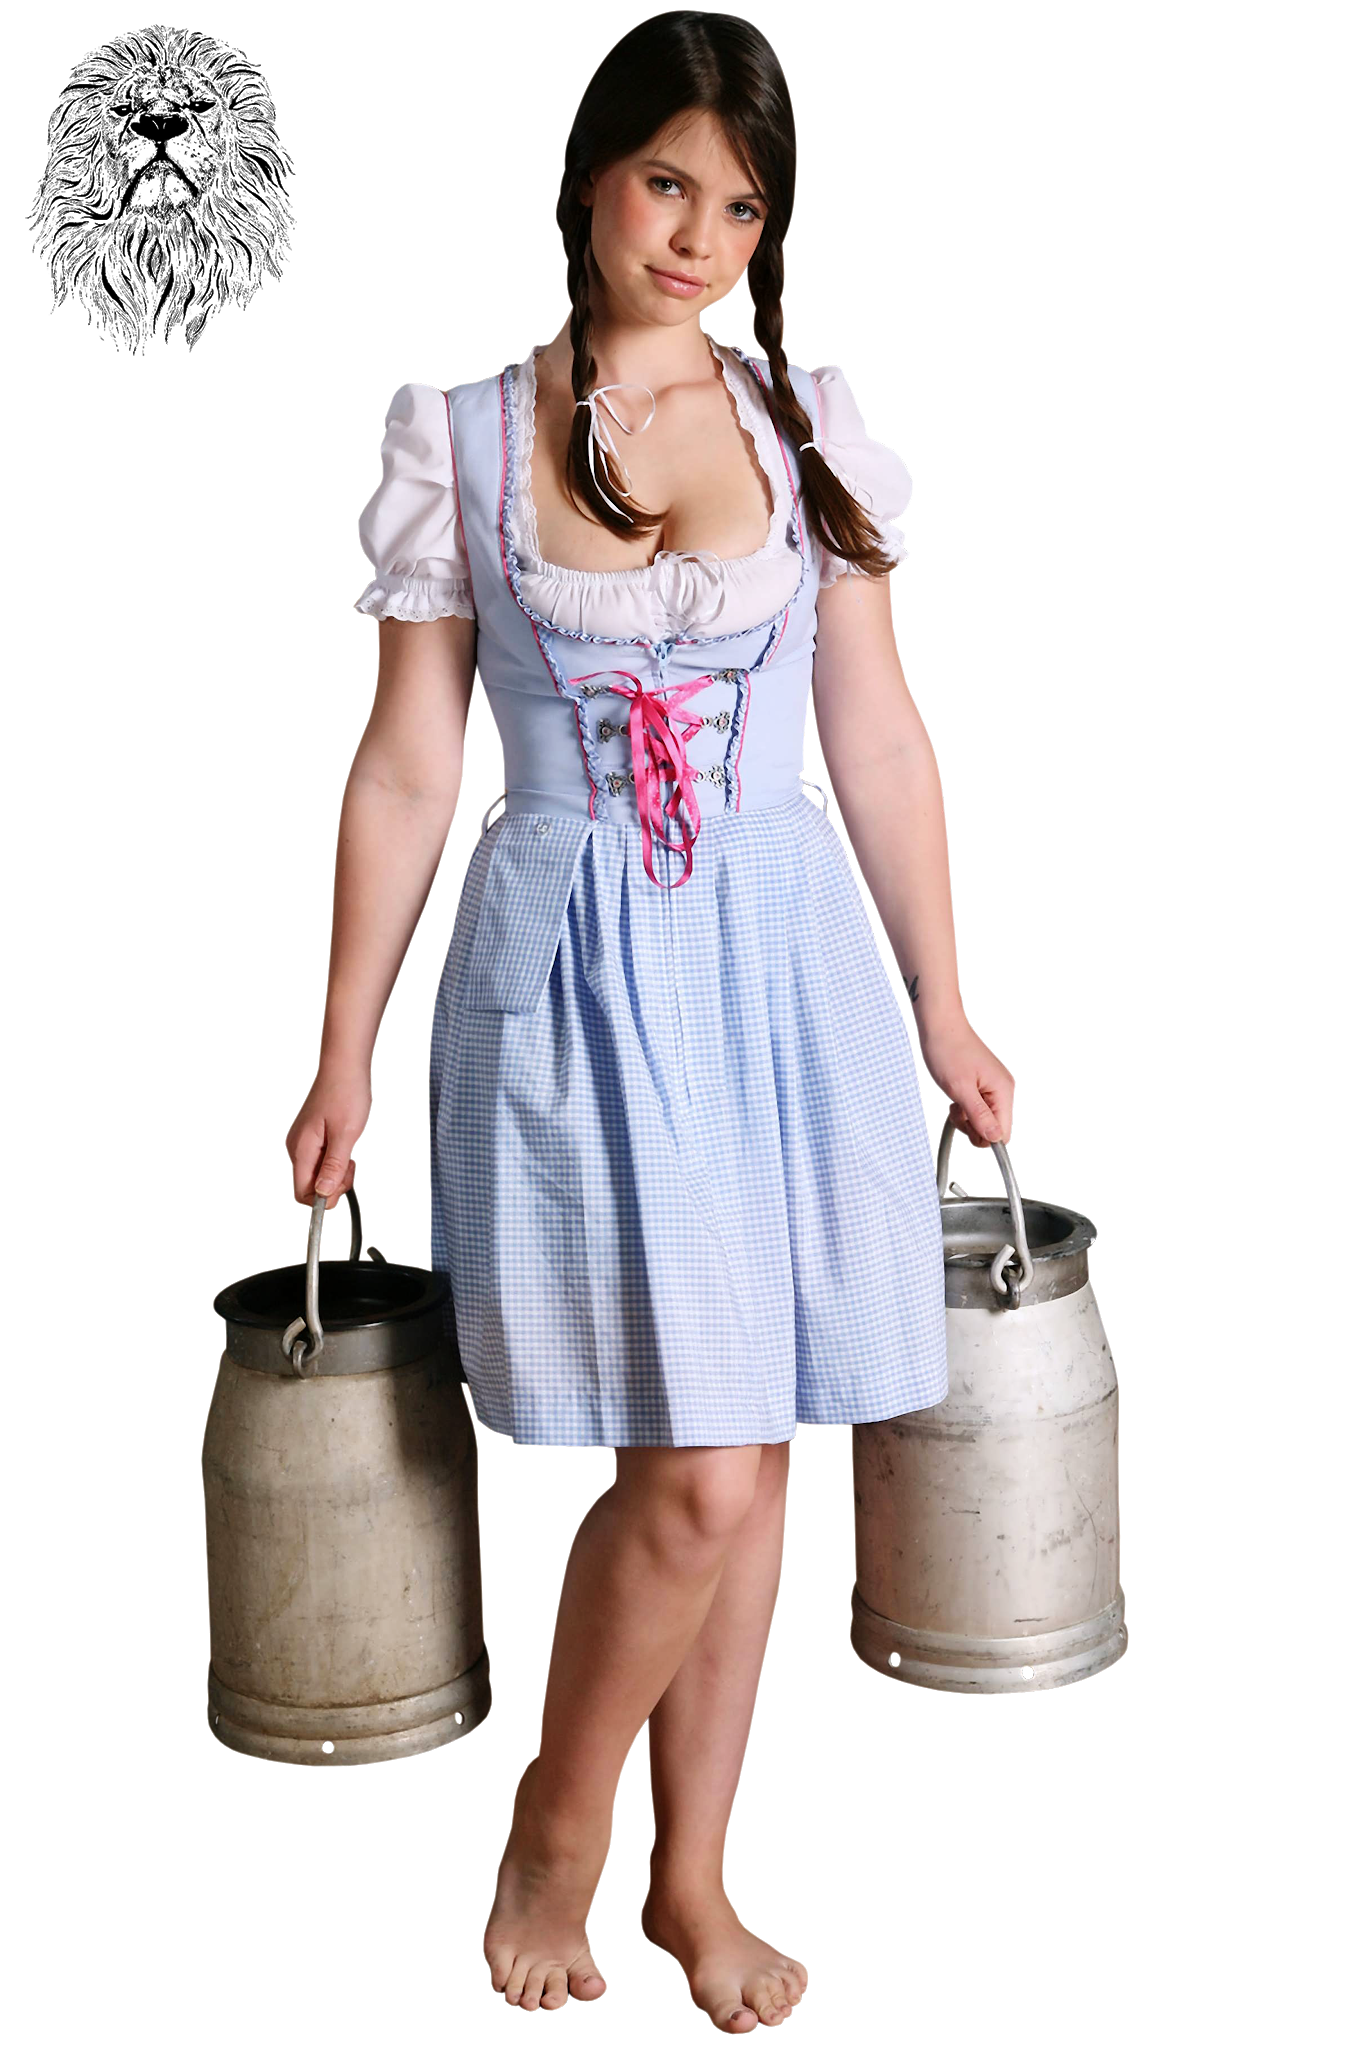 Models - Emma Sinclaire - Dirndl Girl (1)